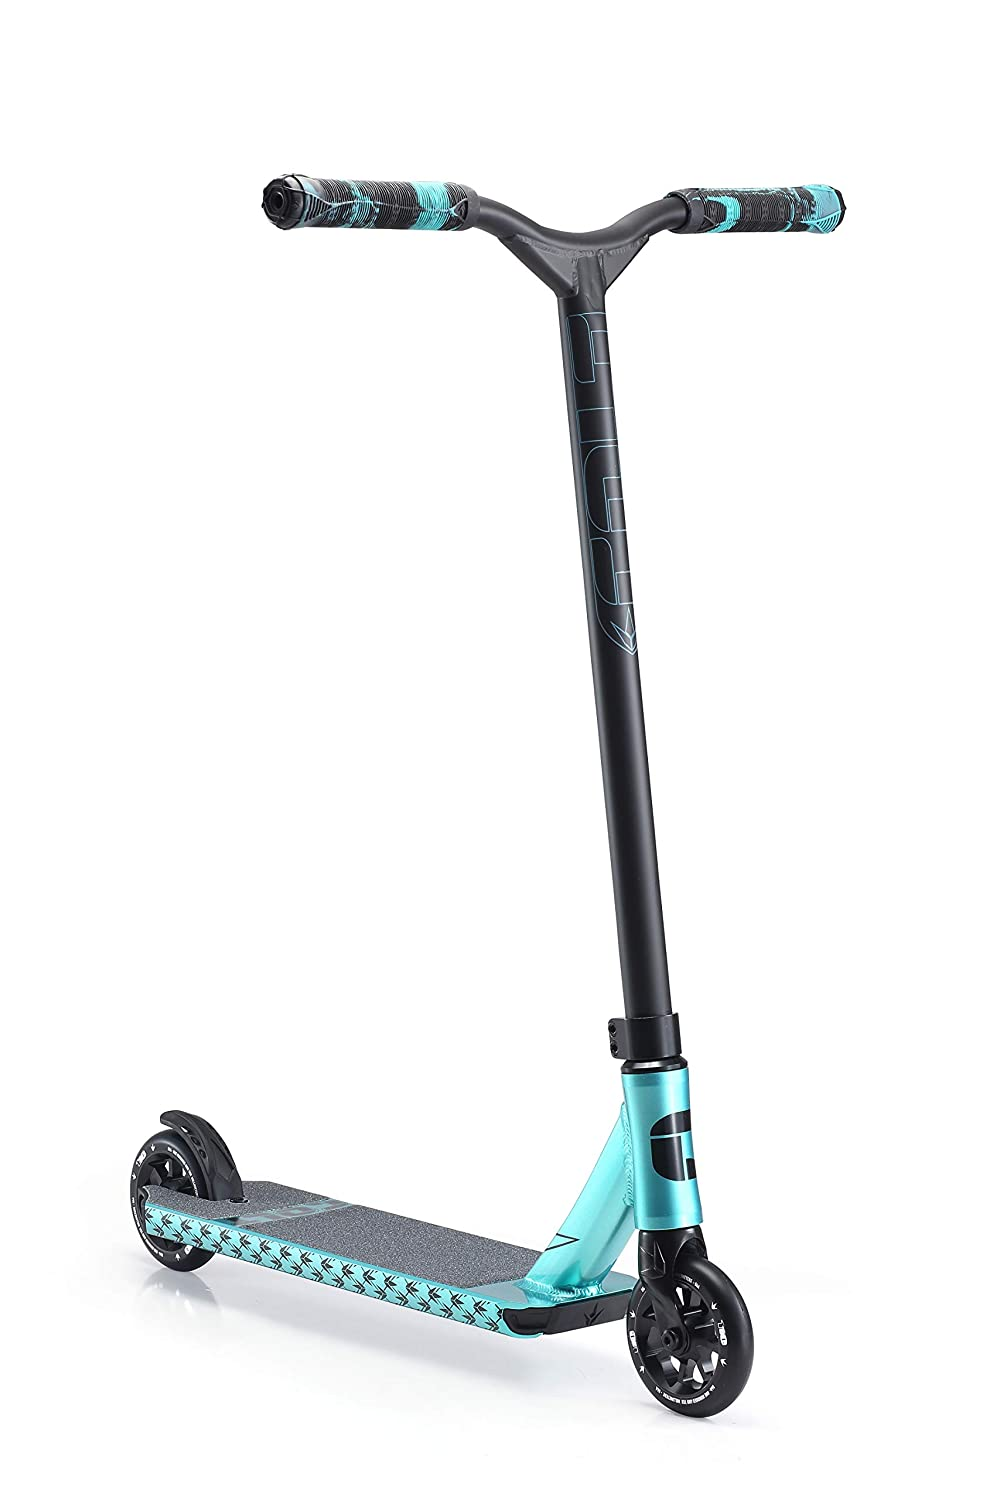 Teal Envy Scooters COLT S4 Complete Scooter